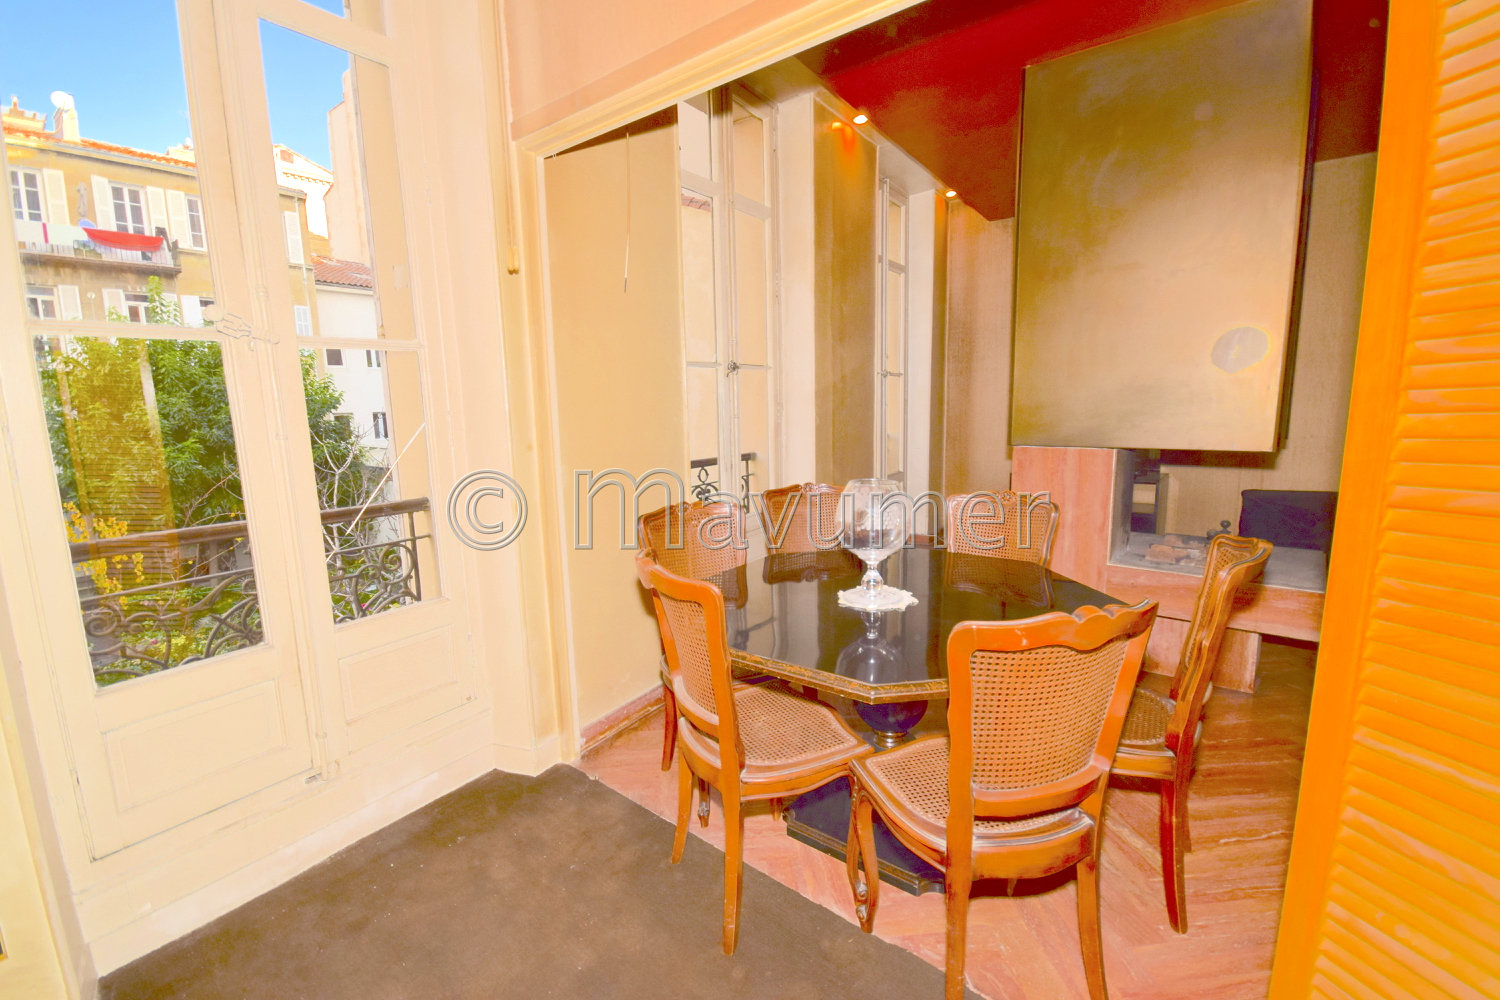 APPARTEMENT T3 CALME CASTELLANE /PREFECTURE 13006 MARSEILLE